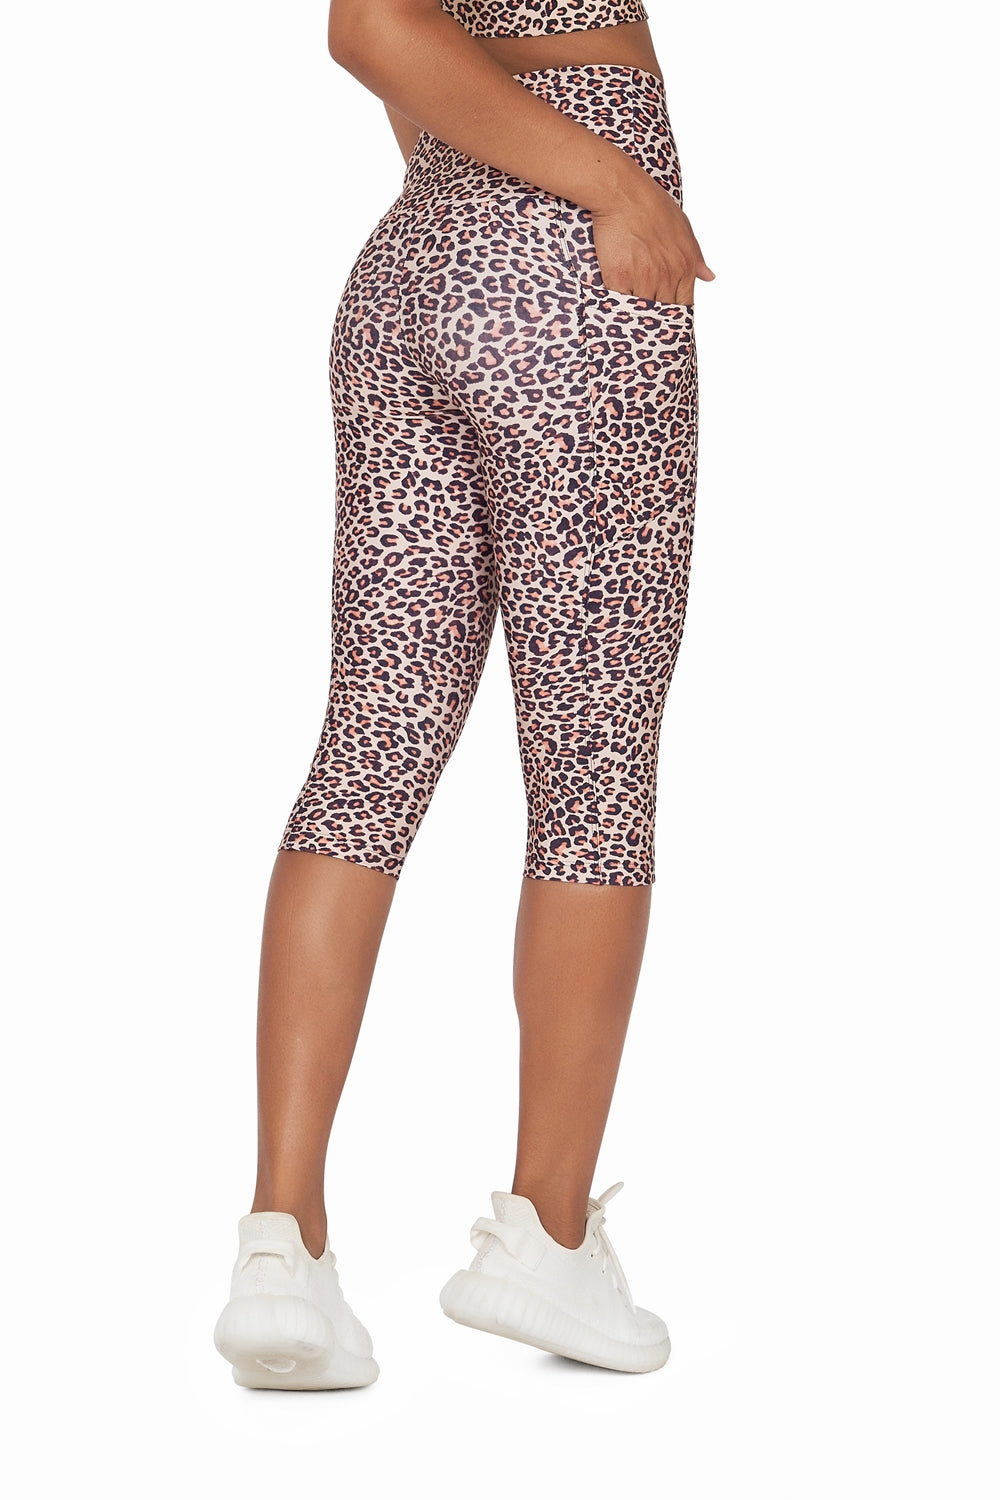 Brown Leopard High Waisted  Under Knee with Pockets